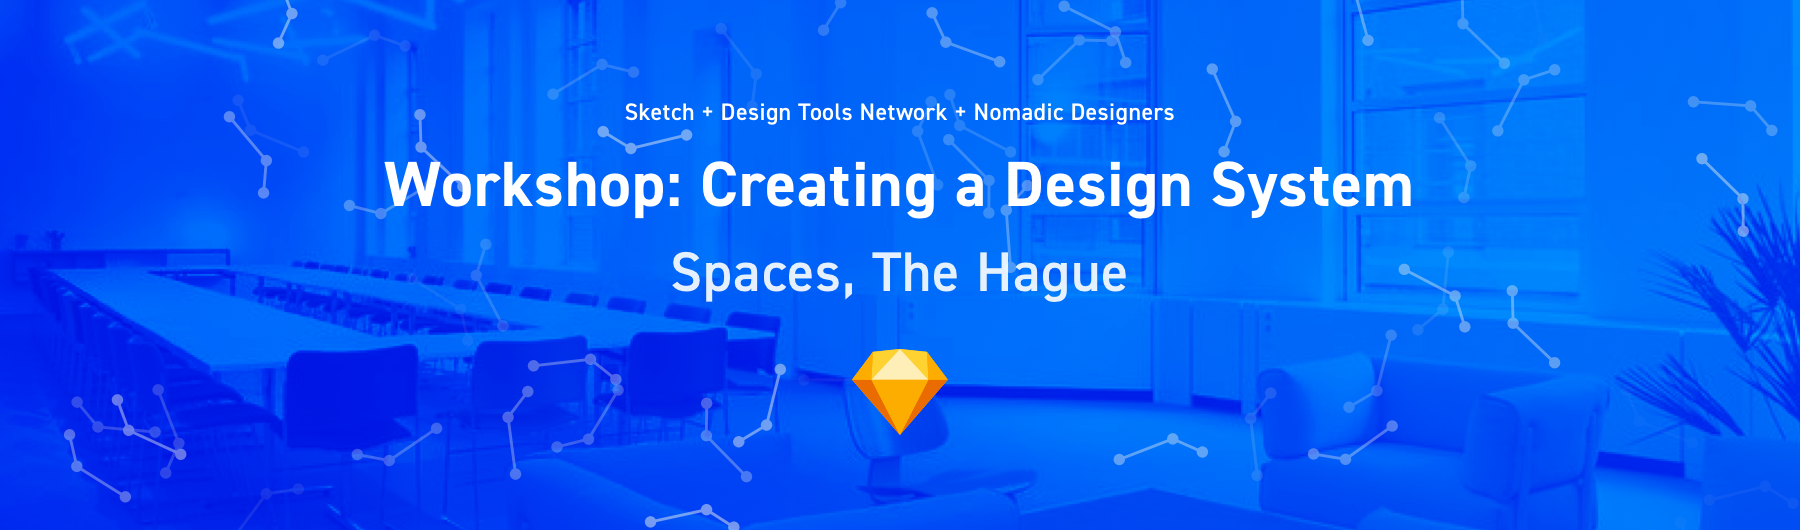 Workshop: Creating a Design System in Sketch (The Hague)